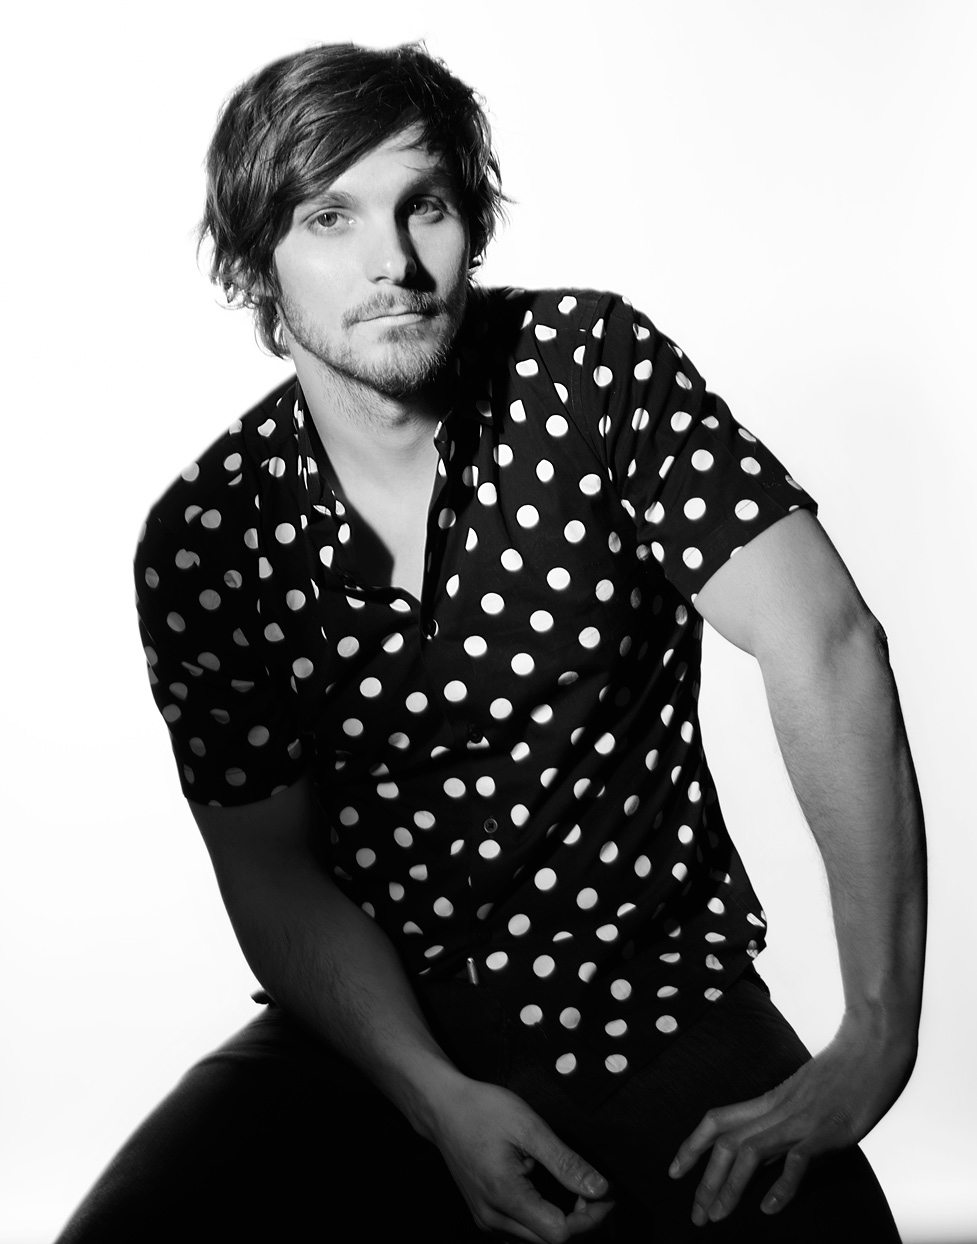 Mark DeLong - Celebrity Photographer - Black and white photo of an actor in a polka dot shirt.